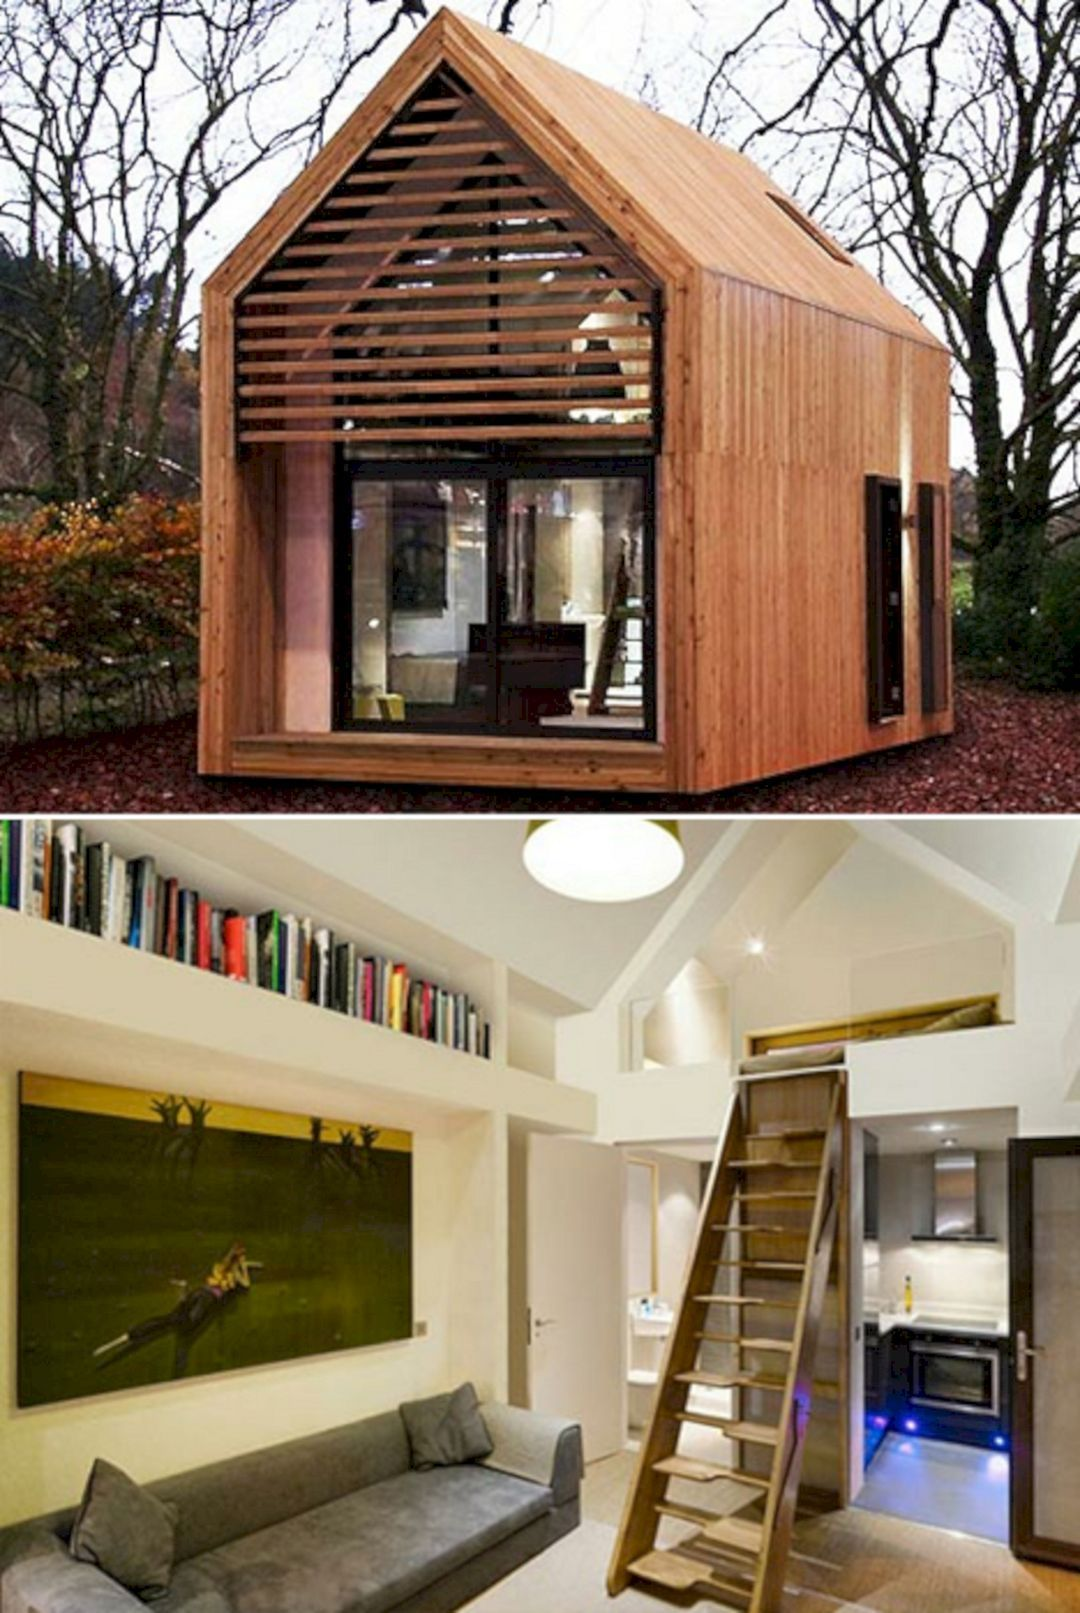 The Best Modern Tiny House Design Small Homes Inspirations